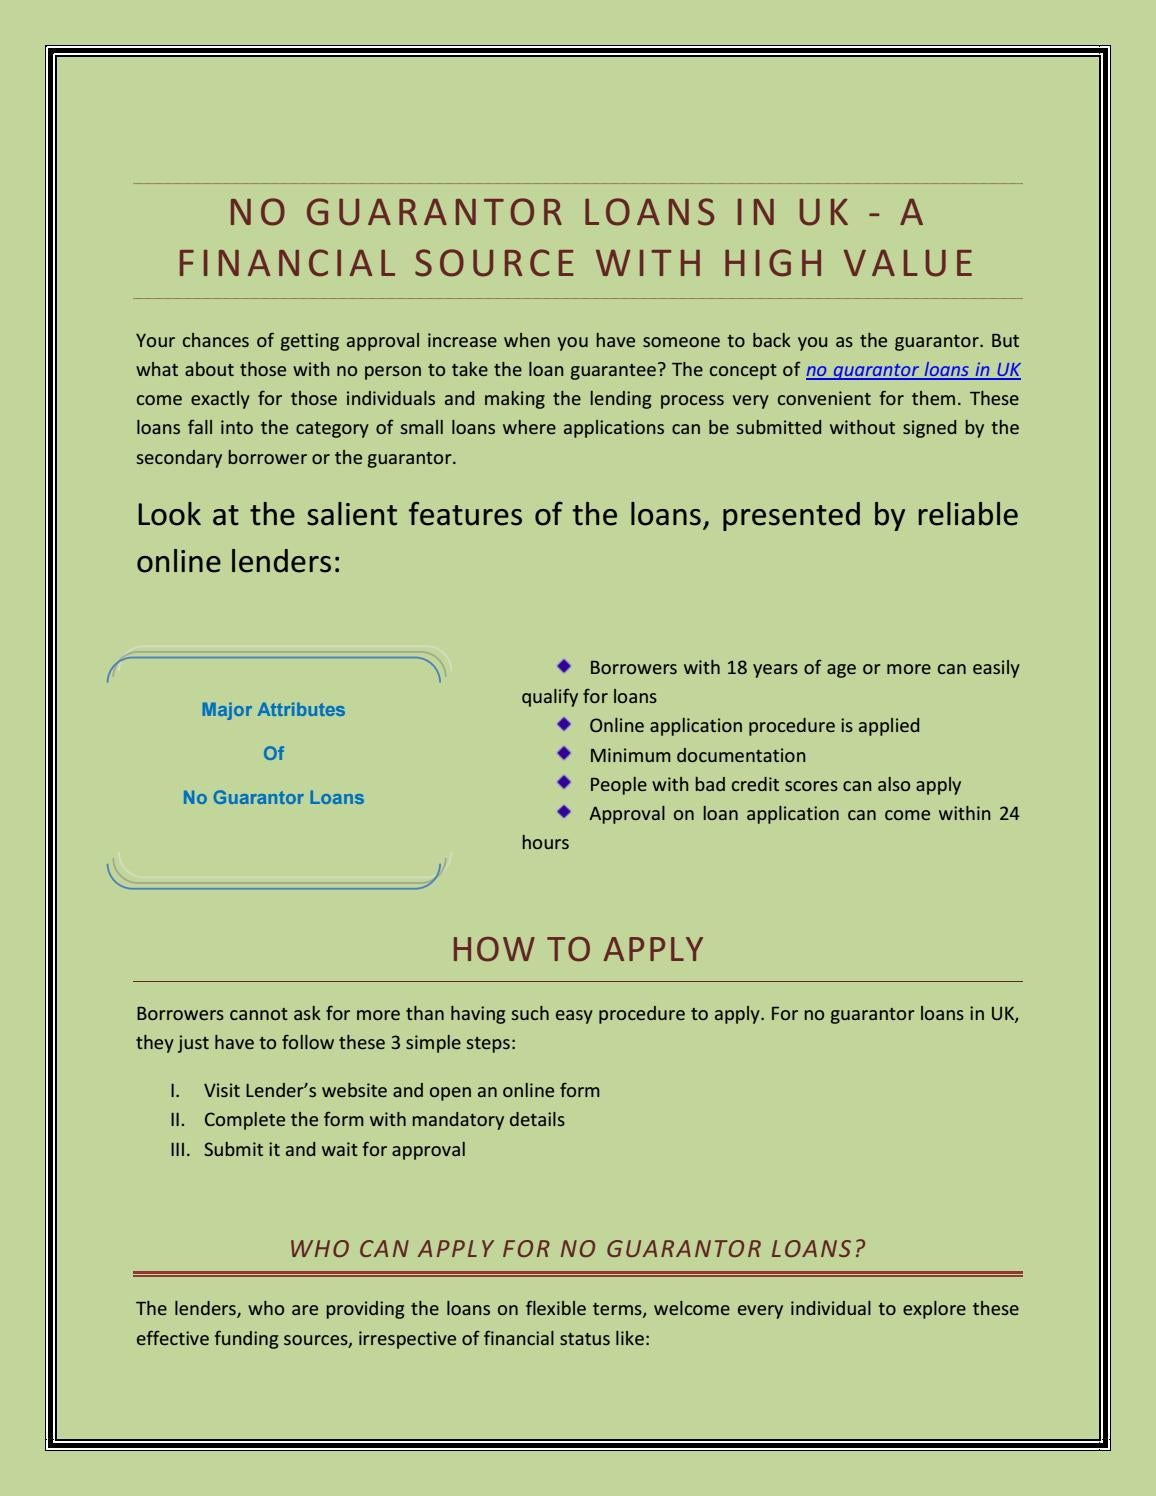 No Guarantor Loans in UK - A Financial Source with High Value by